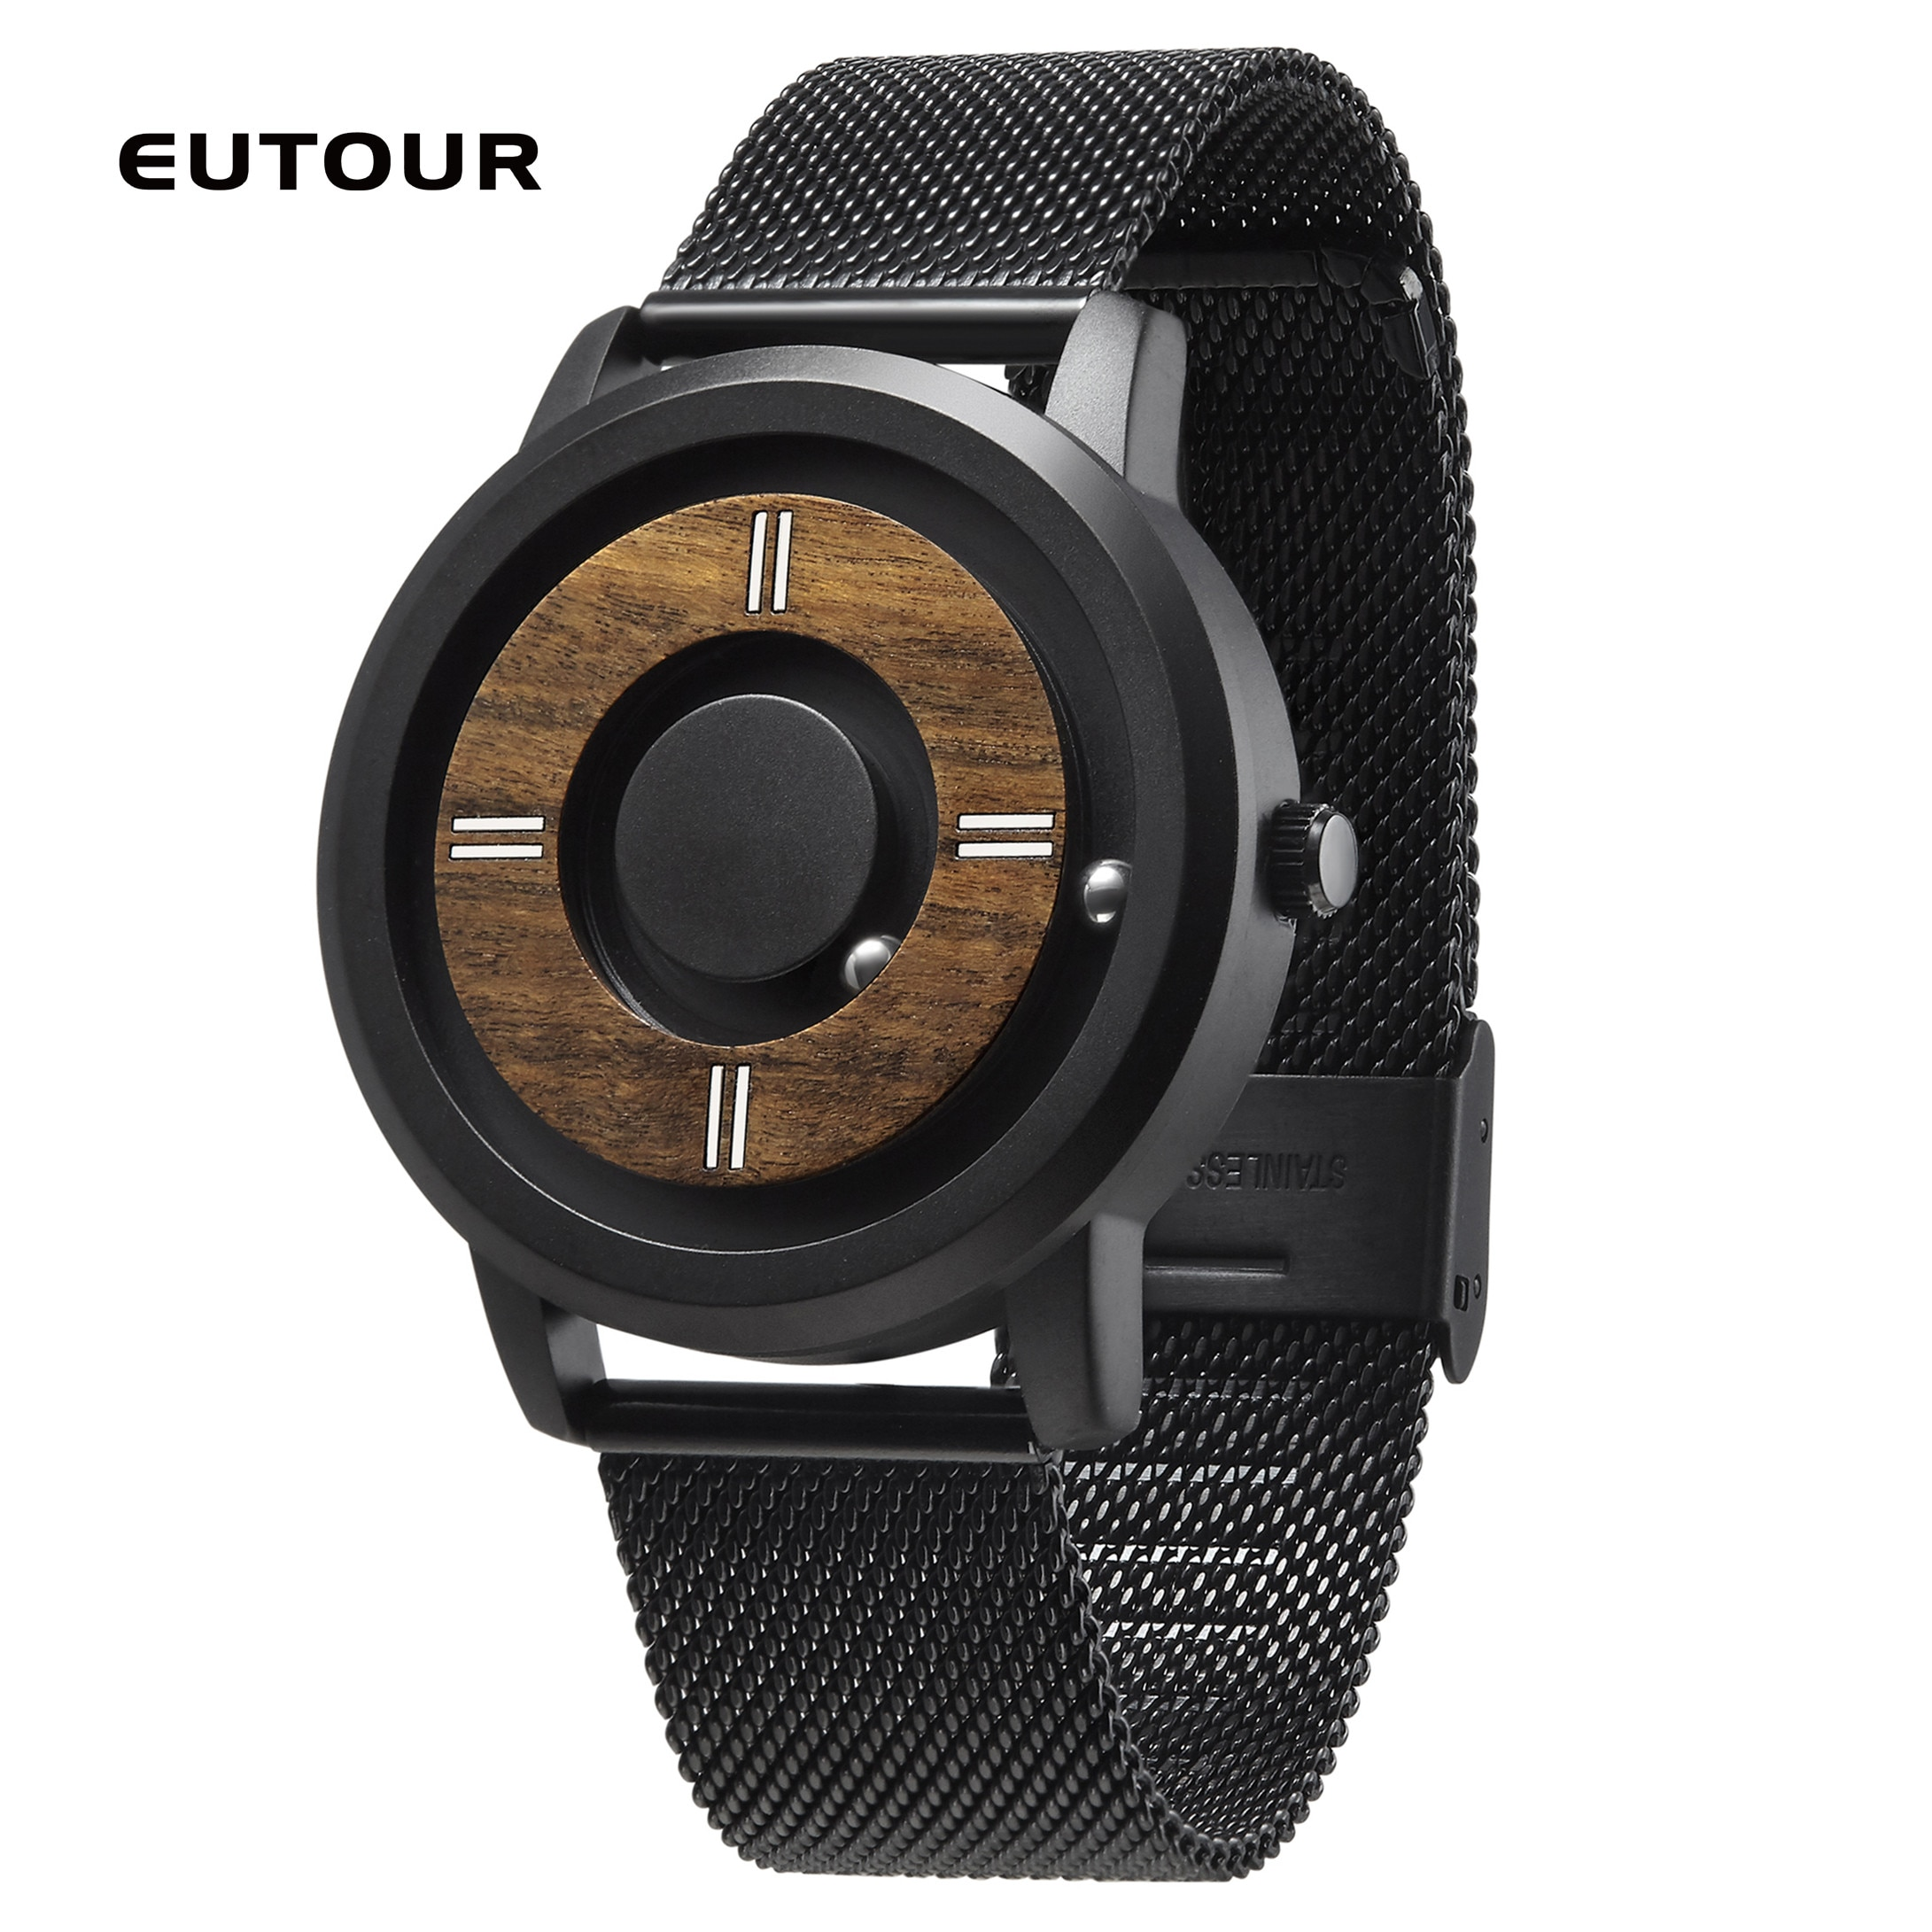 He2db8f13a5cc4616953008b92ba0f871b - EUTOUR Magnetic ball Wooden dial watches Luxury Brand Mens fashion Casual Quartz Watch Simple Men Round leather strap Wristw